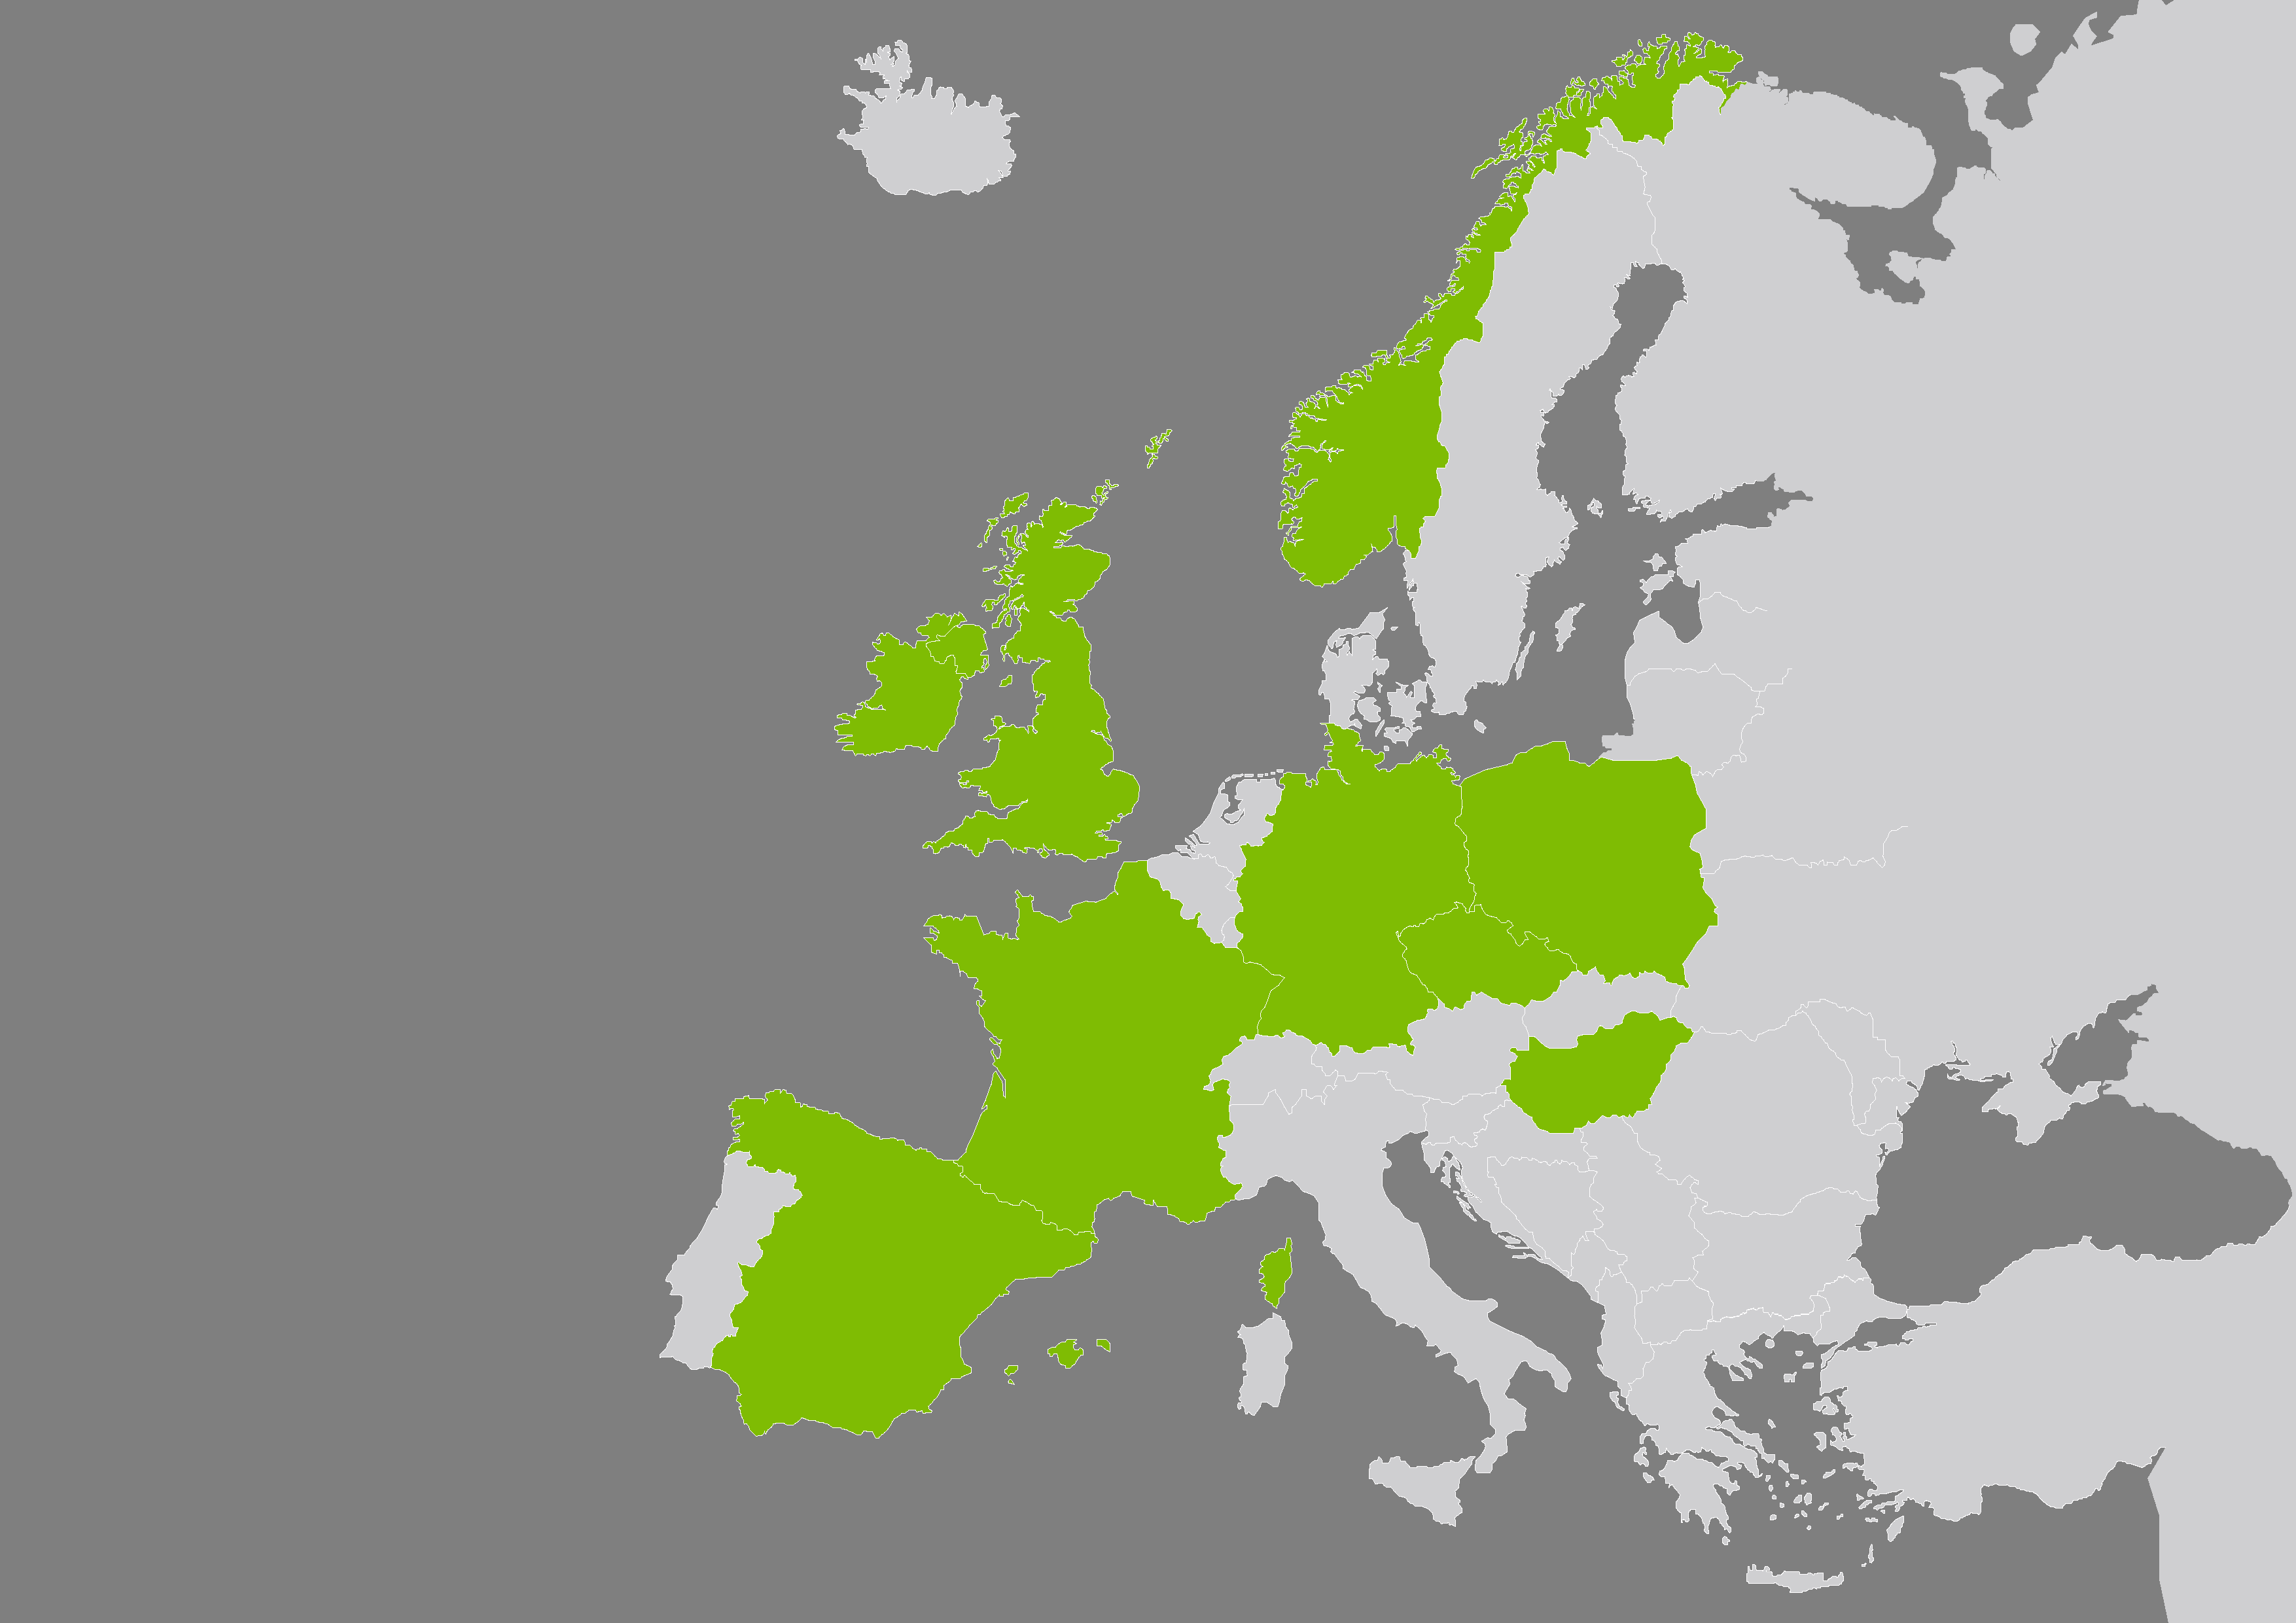 Paragon in Europe